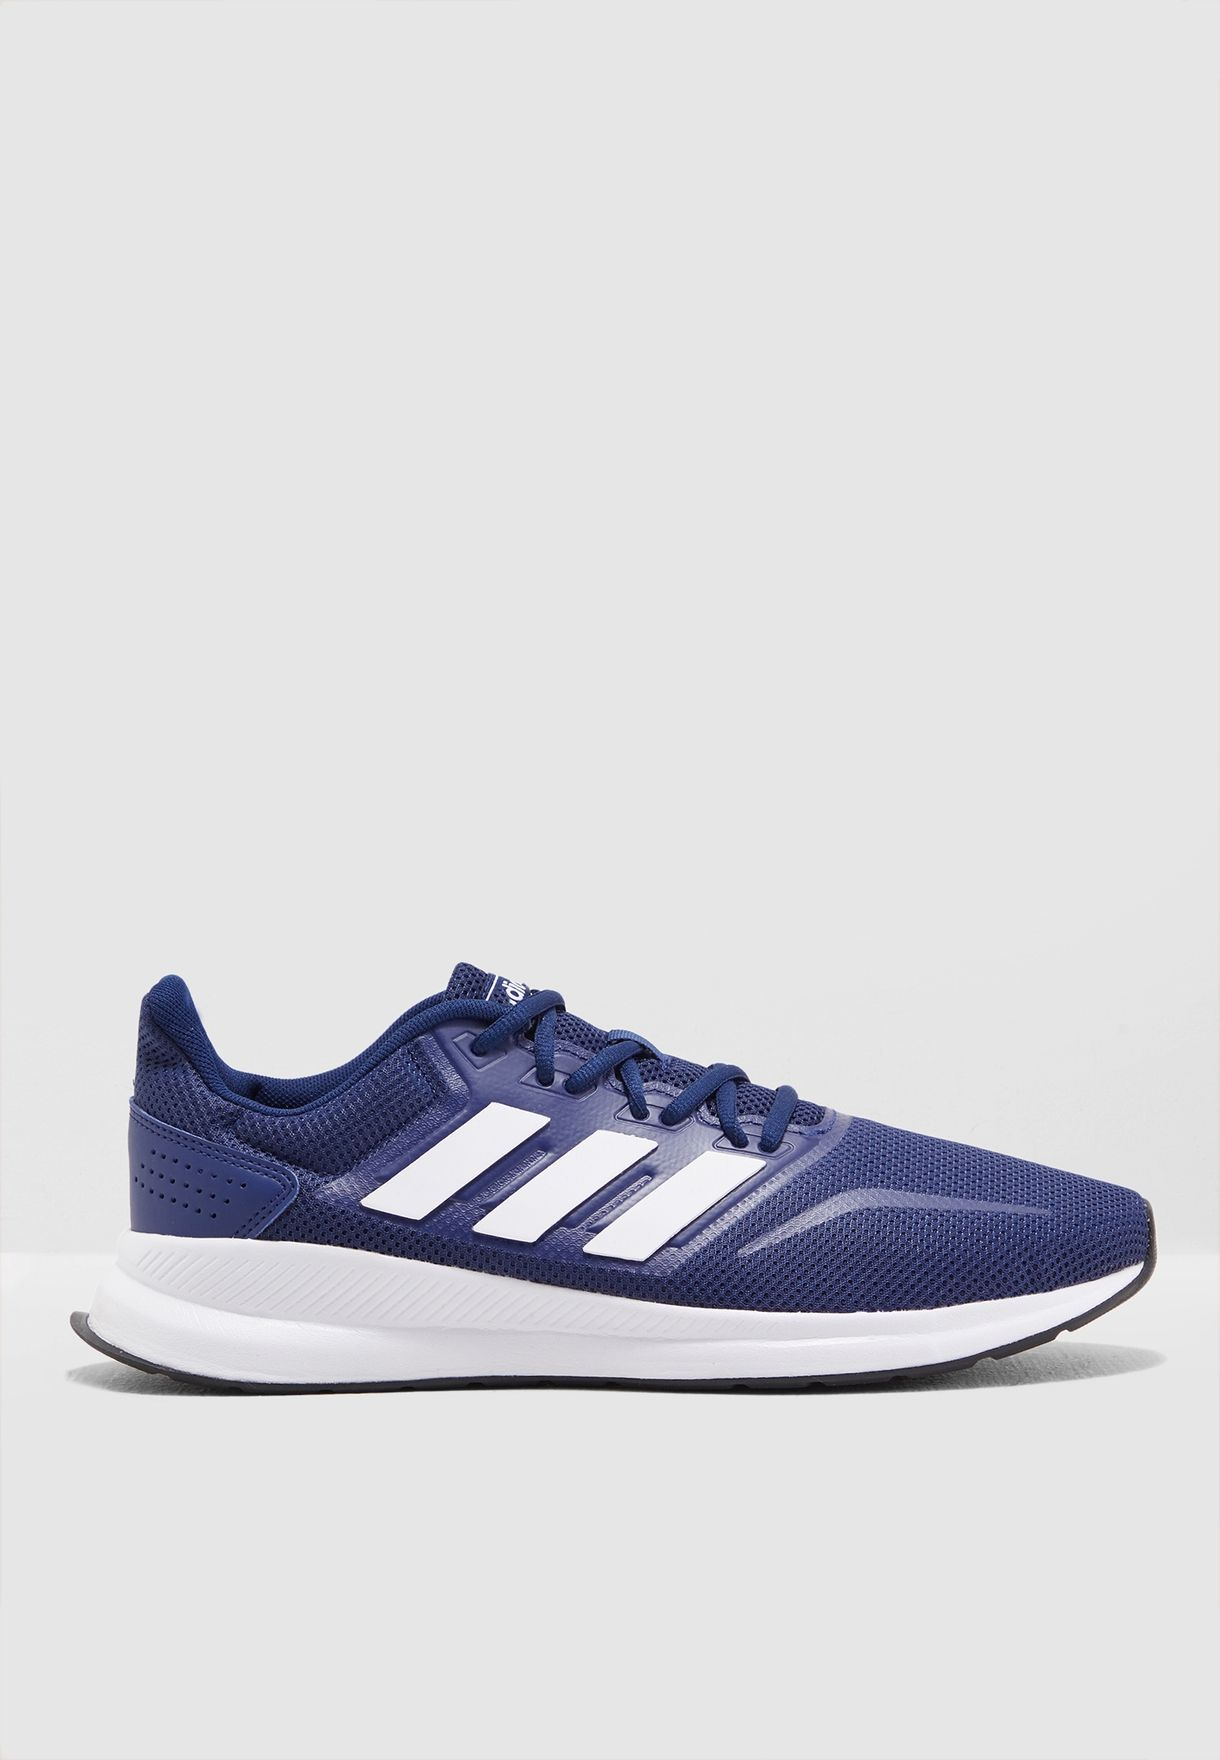 buffet bolsillo Pacífico  Buy adidas blue Runfalcon for Men in MENA, Worldwide | F36201